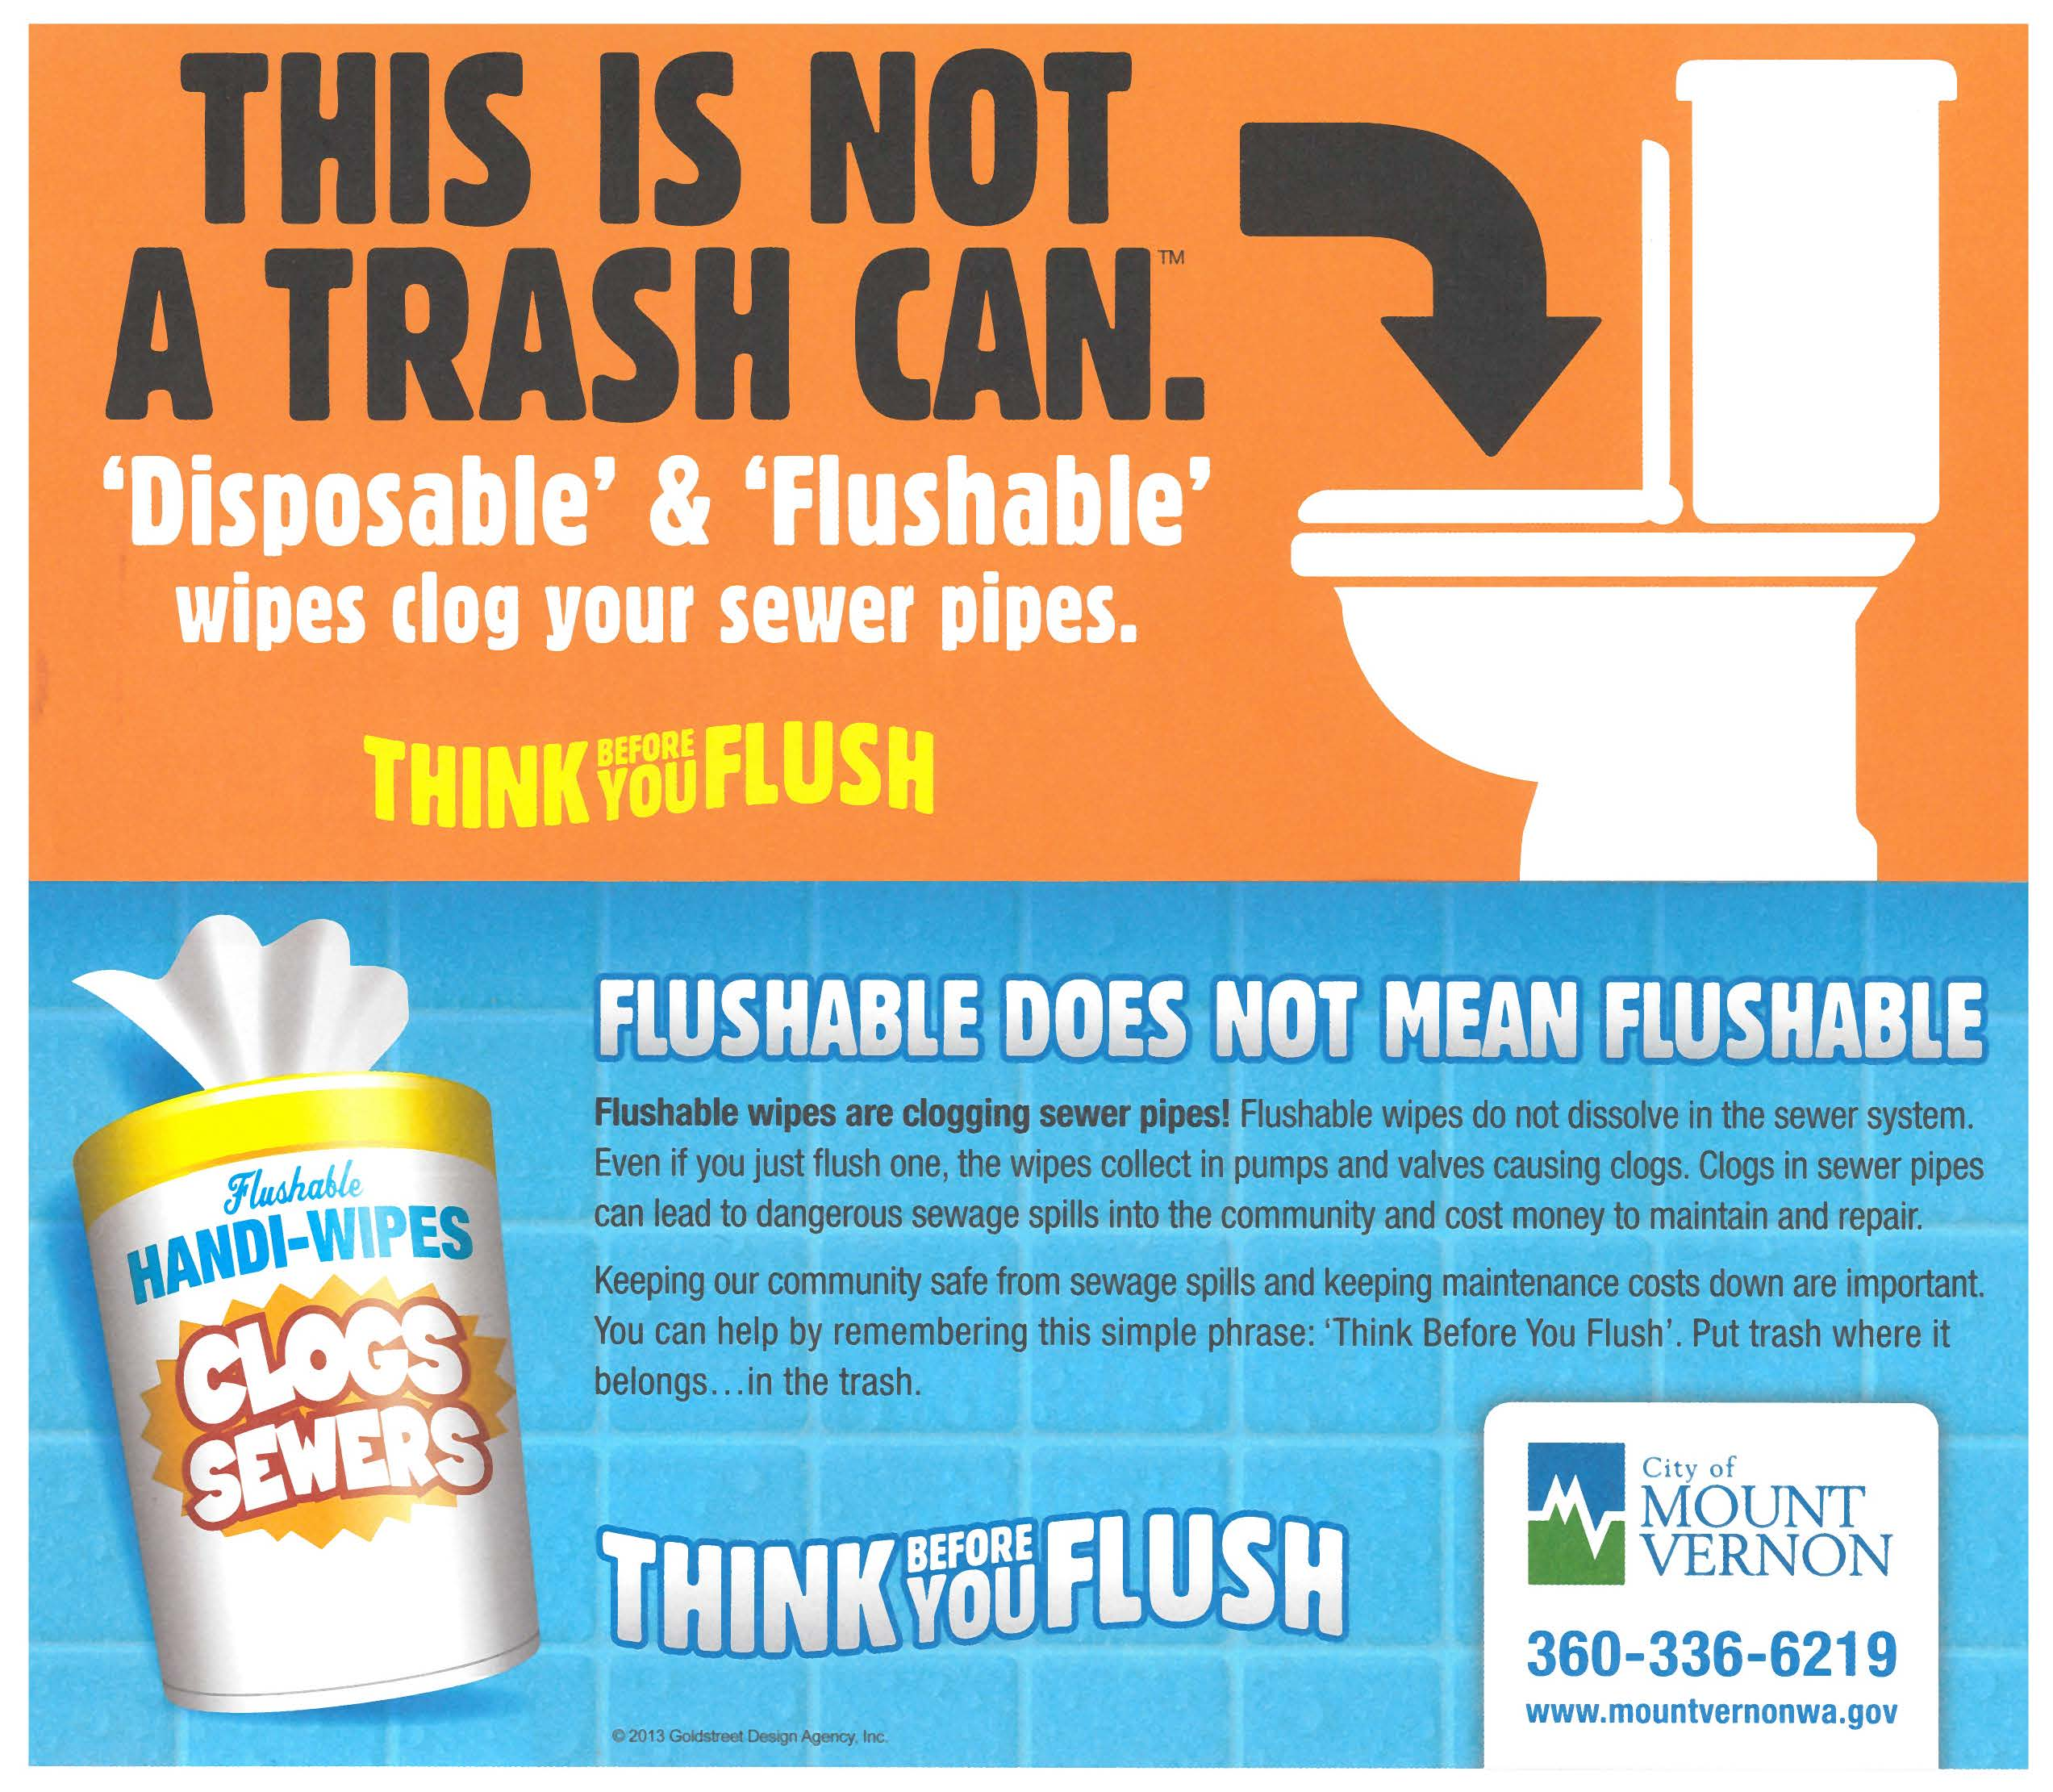 Flushable Wipes - Not flushable